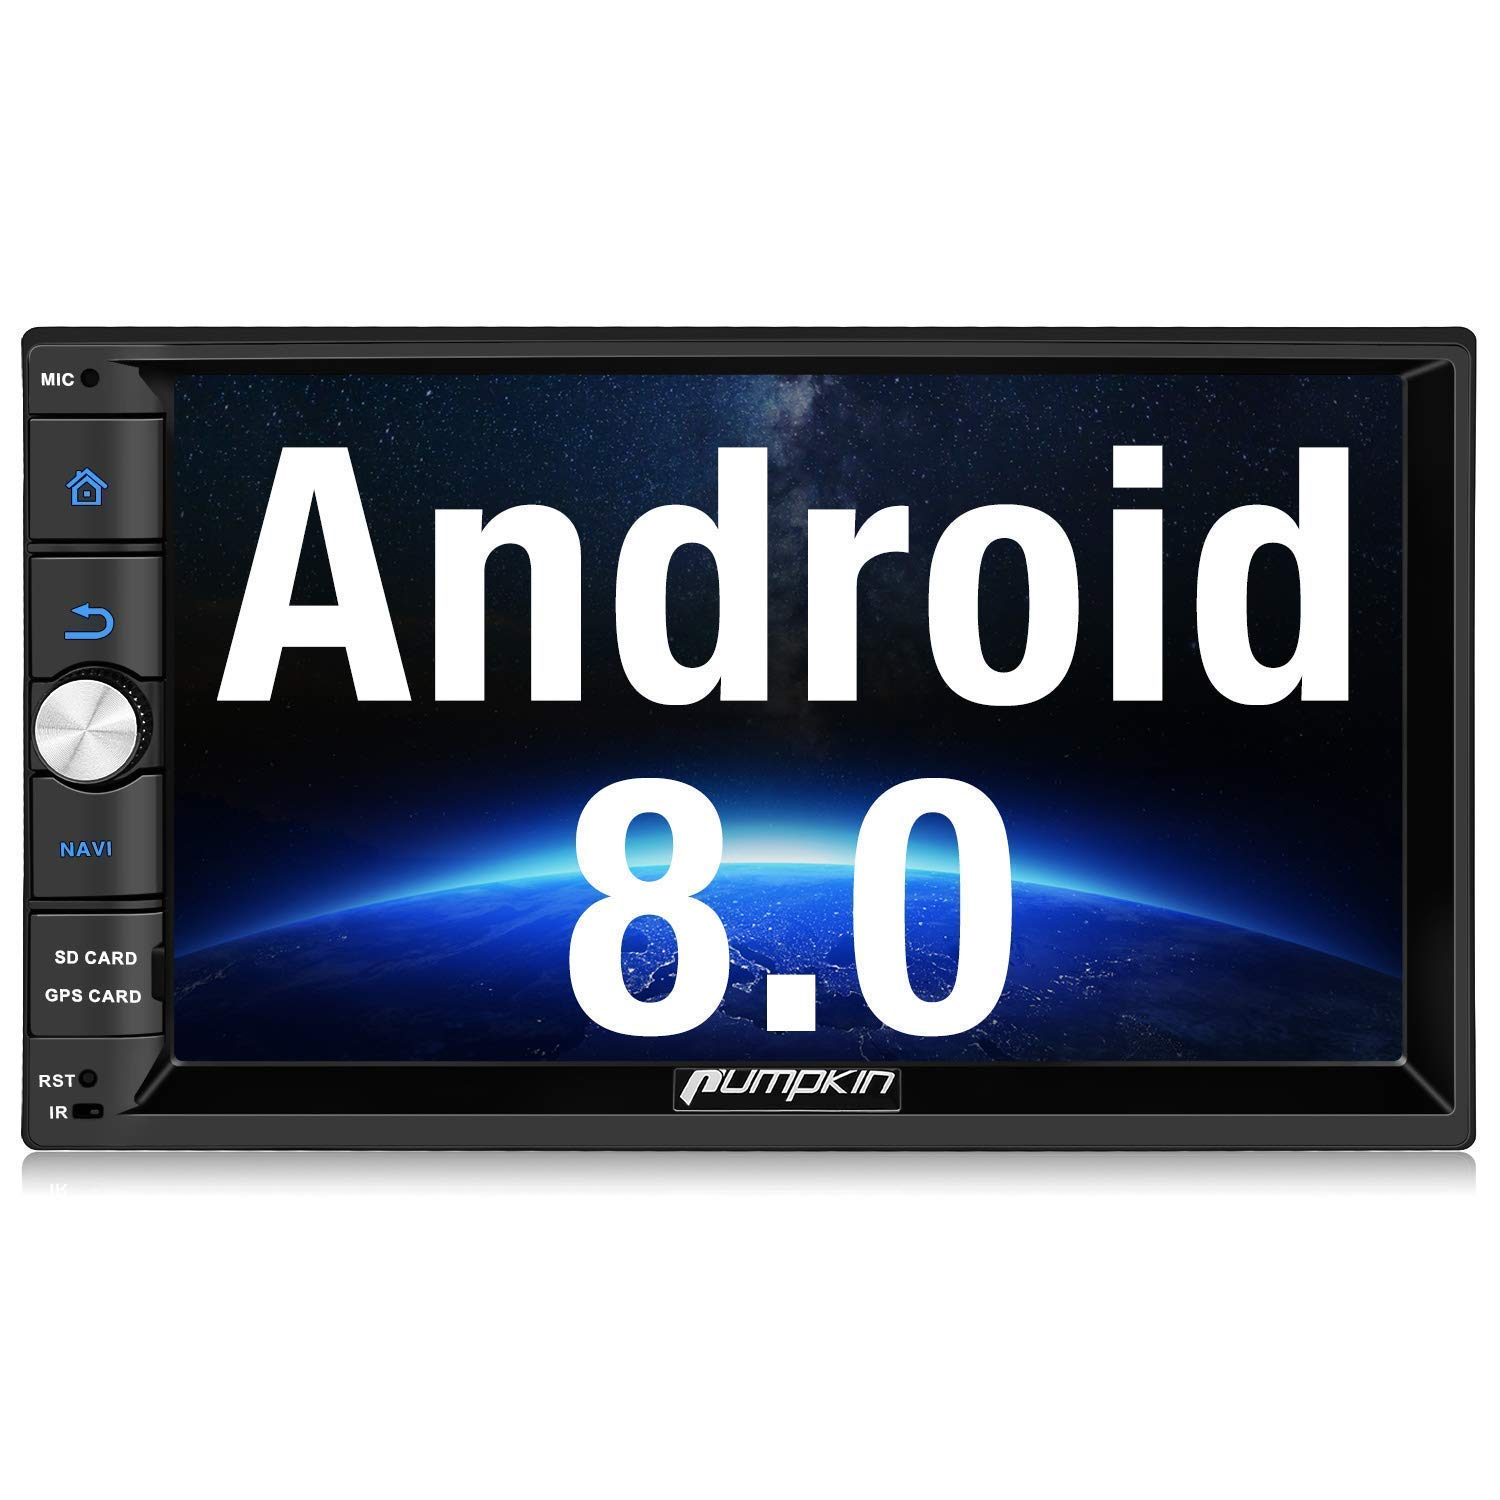 PUMPKIN Android 8.0 Car Stereo Radio Double Din with GPS Navigation, WiFi, Android Auto, Support Fastboot, Backup Camera, AUX, USB/SD, 7 inch Touch Screen